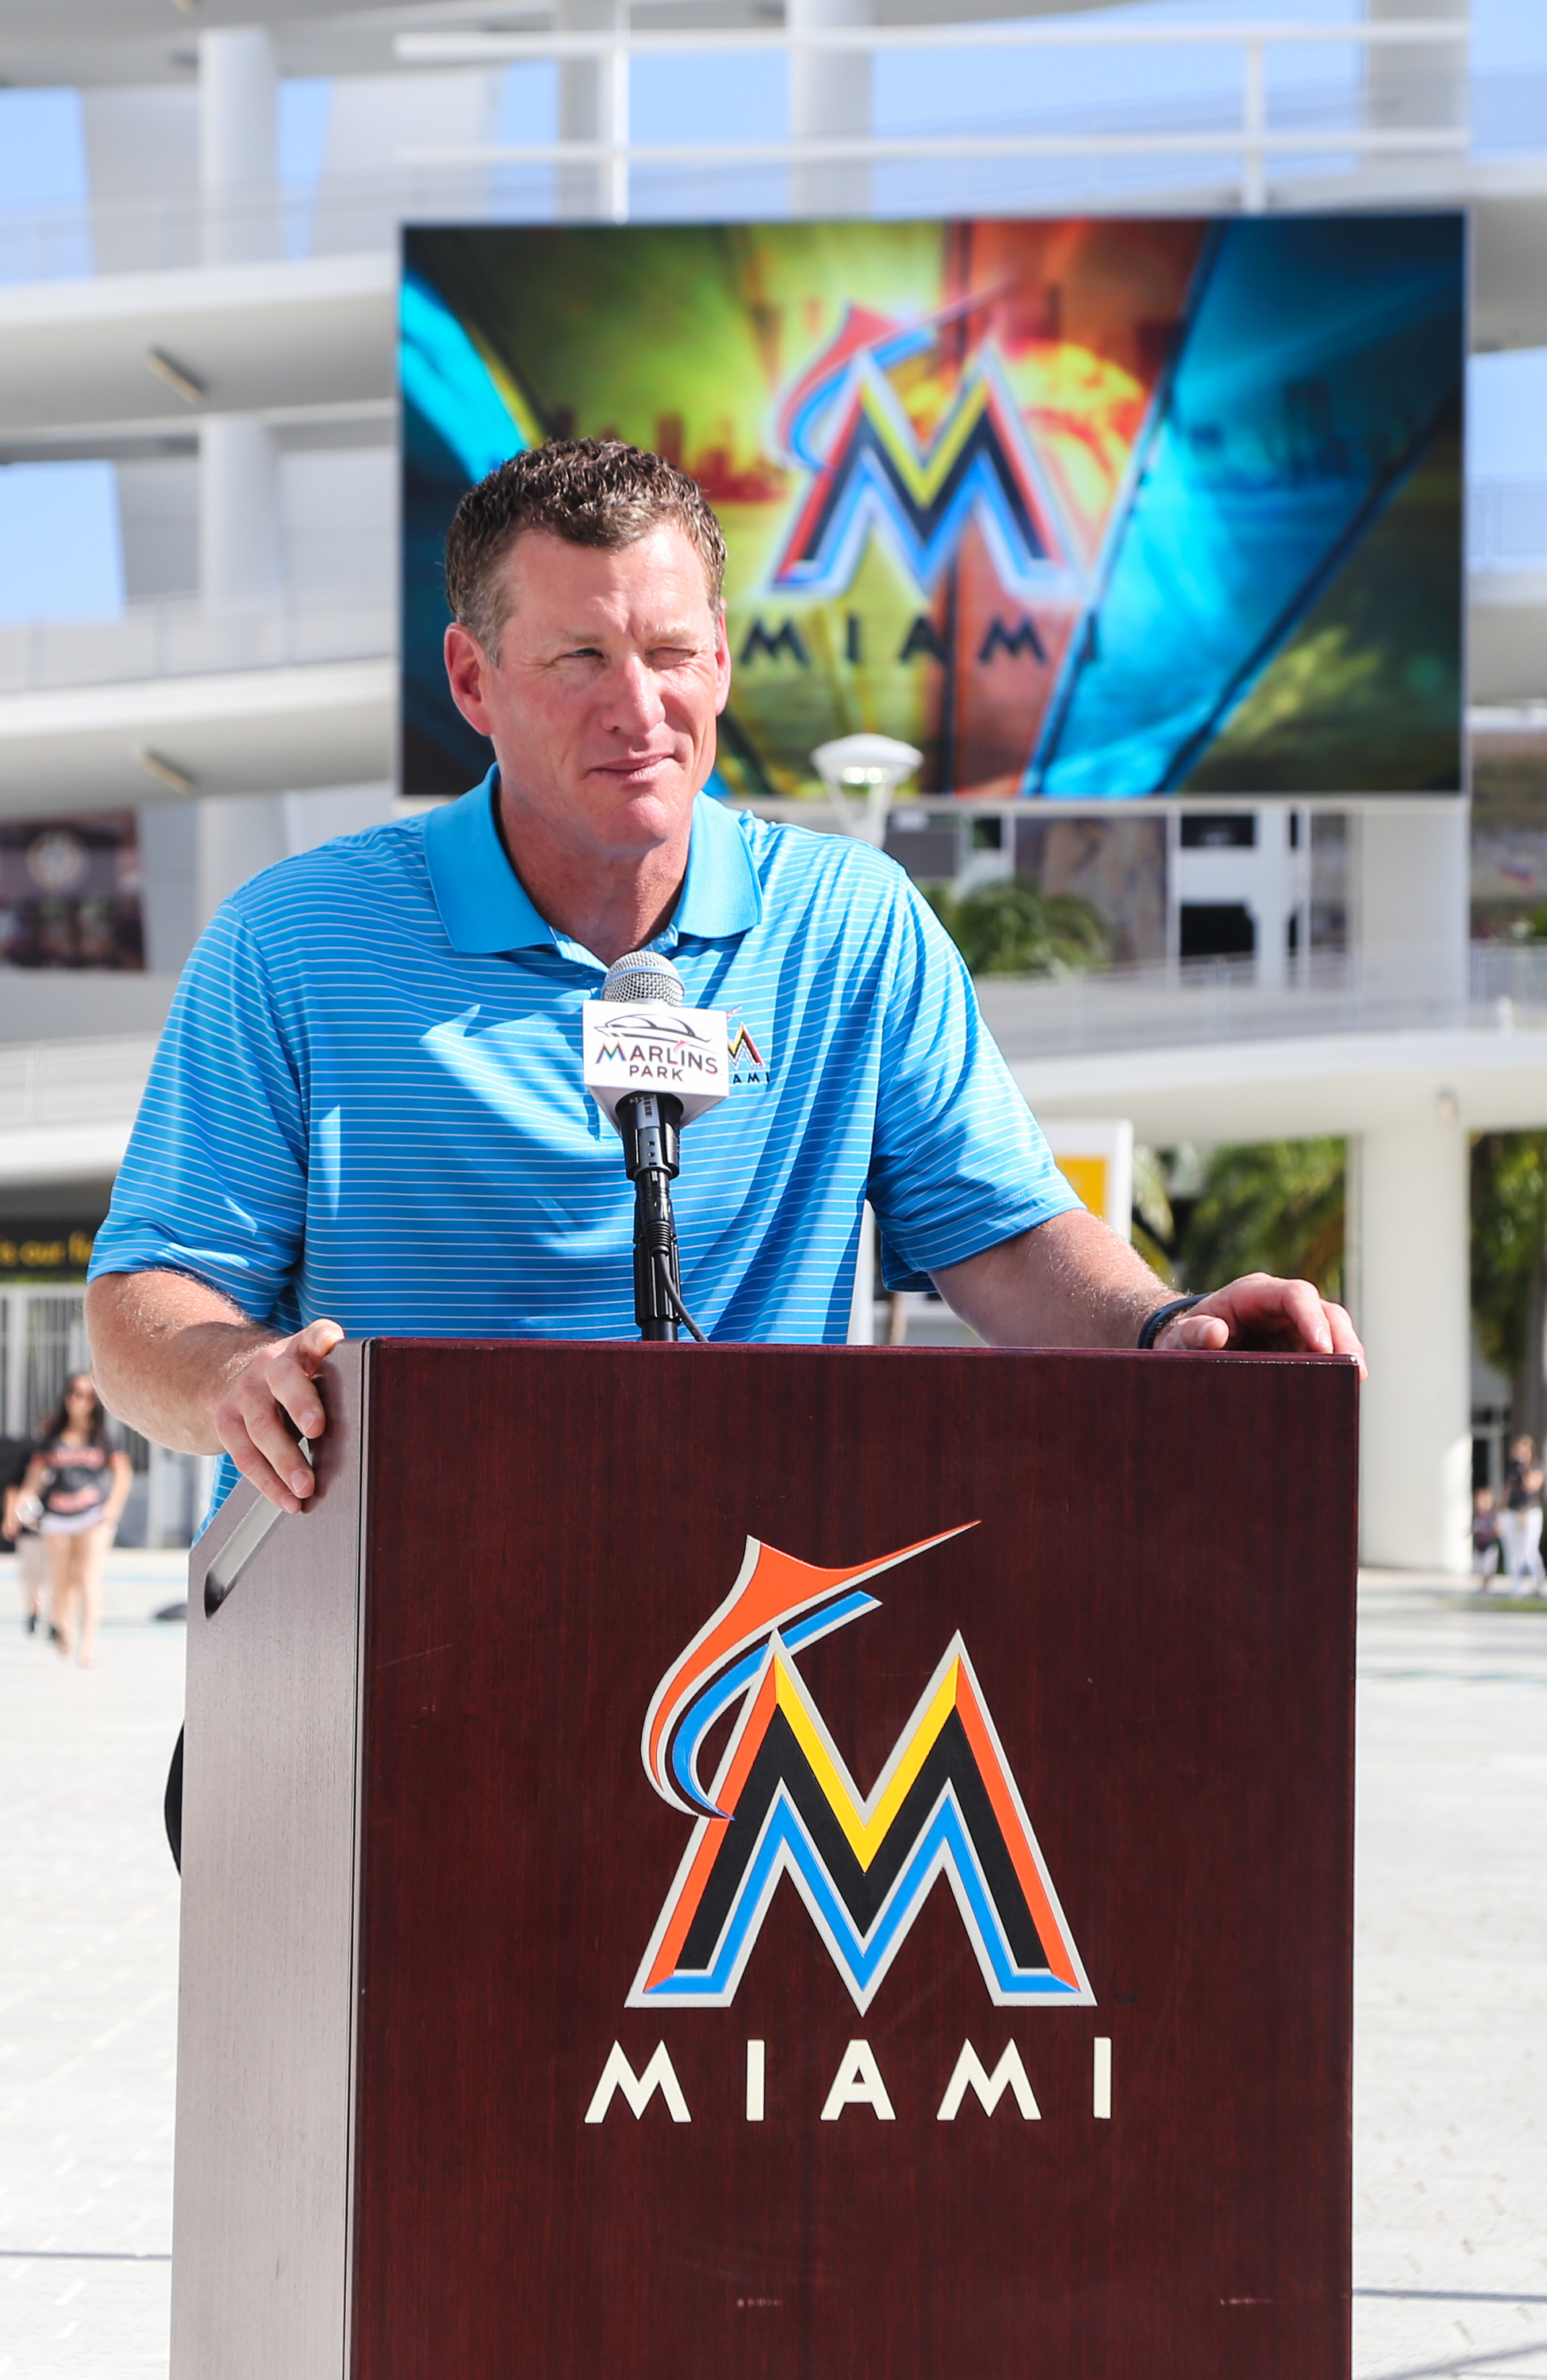 Ride of Fame Inducts 1st Miami Honoree Jeff Conine As Part Of Worldwide Expansion